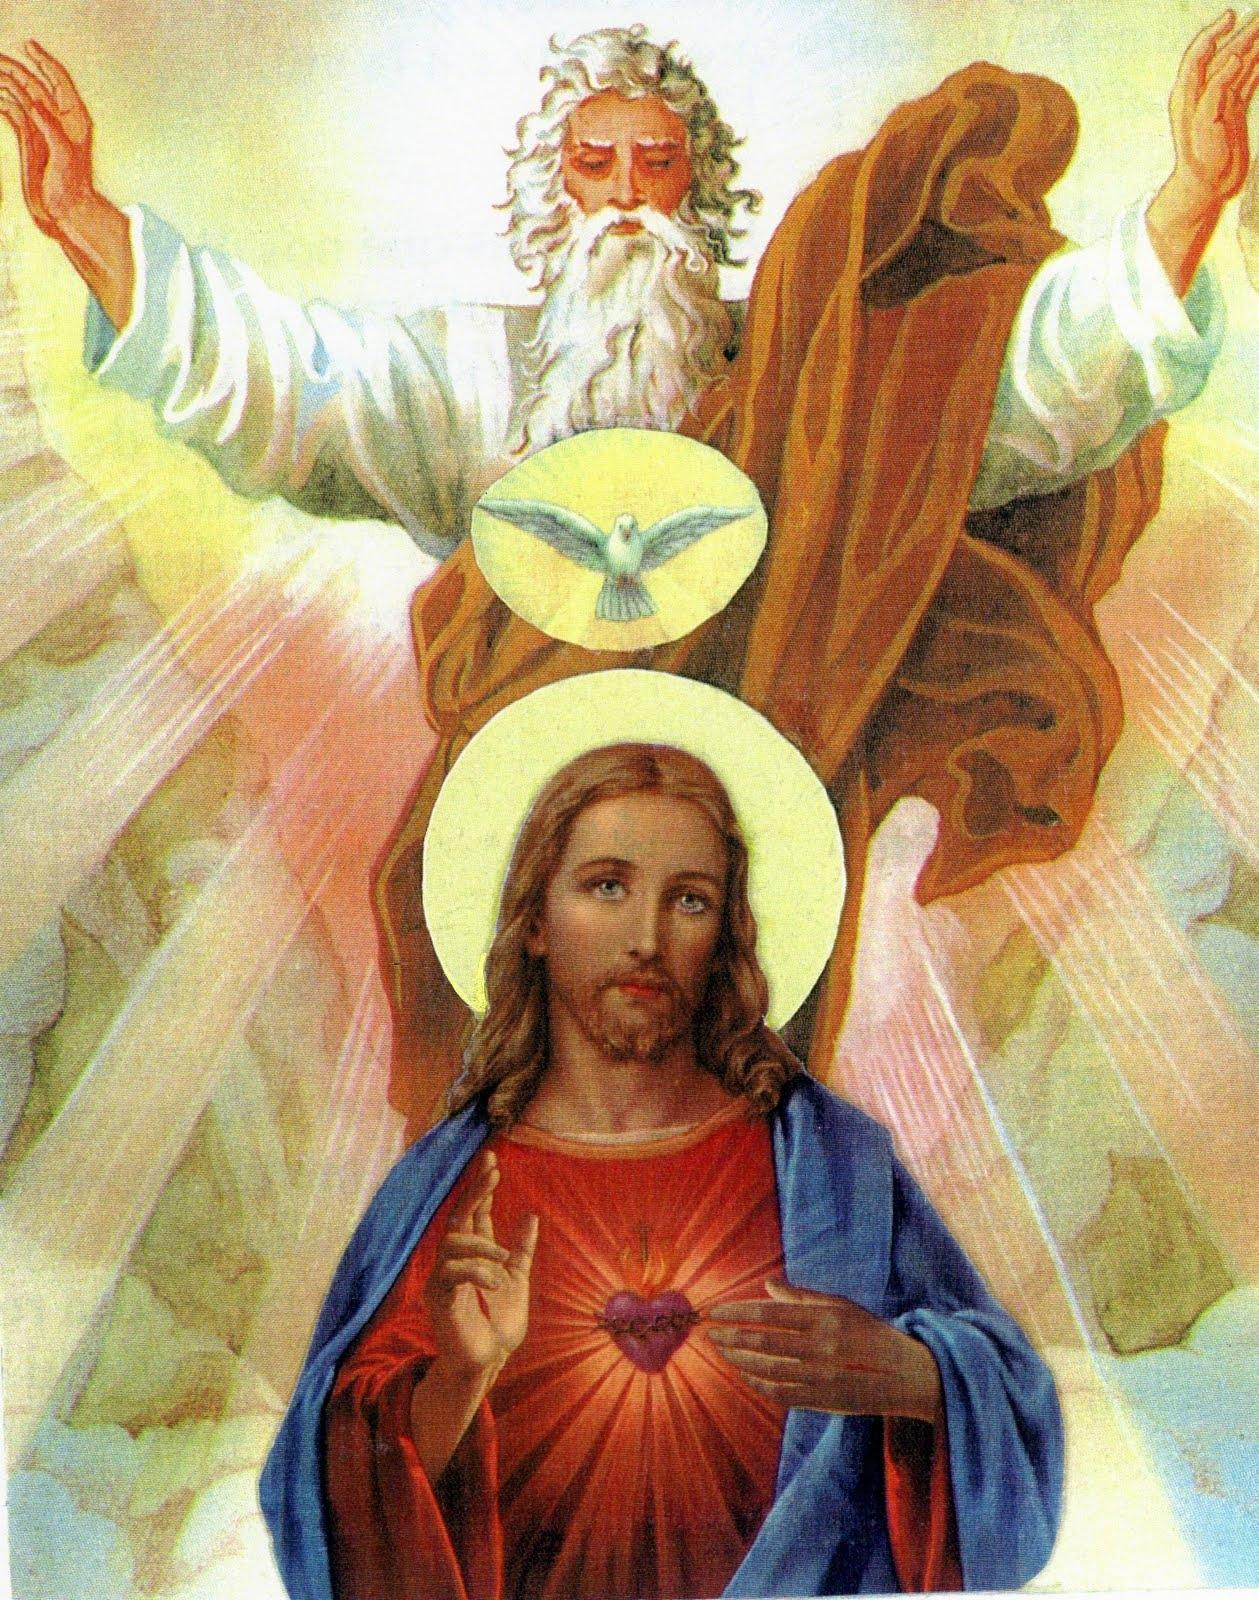 images of god and the holy Long ago, the holy spirit guided our church leaders to understand that jesus is true god and true man he is both divine and human he is the second person of the blessed trinity jesus was also a child who grew up, and who eventually suffered death on the cross and rose from the dead.